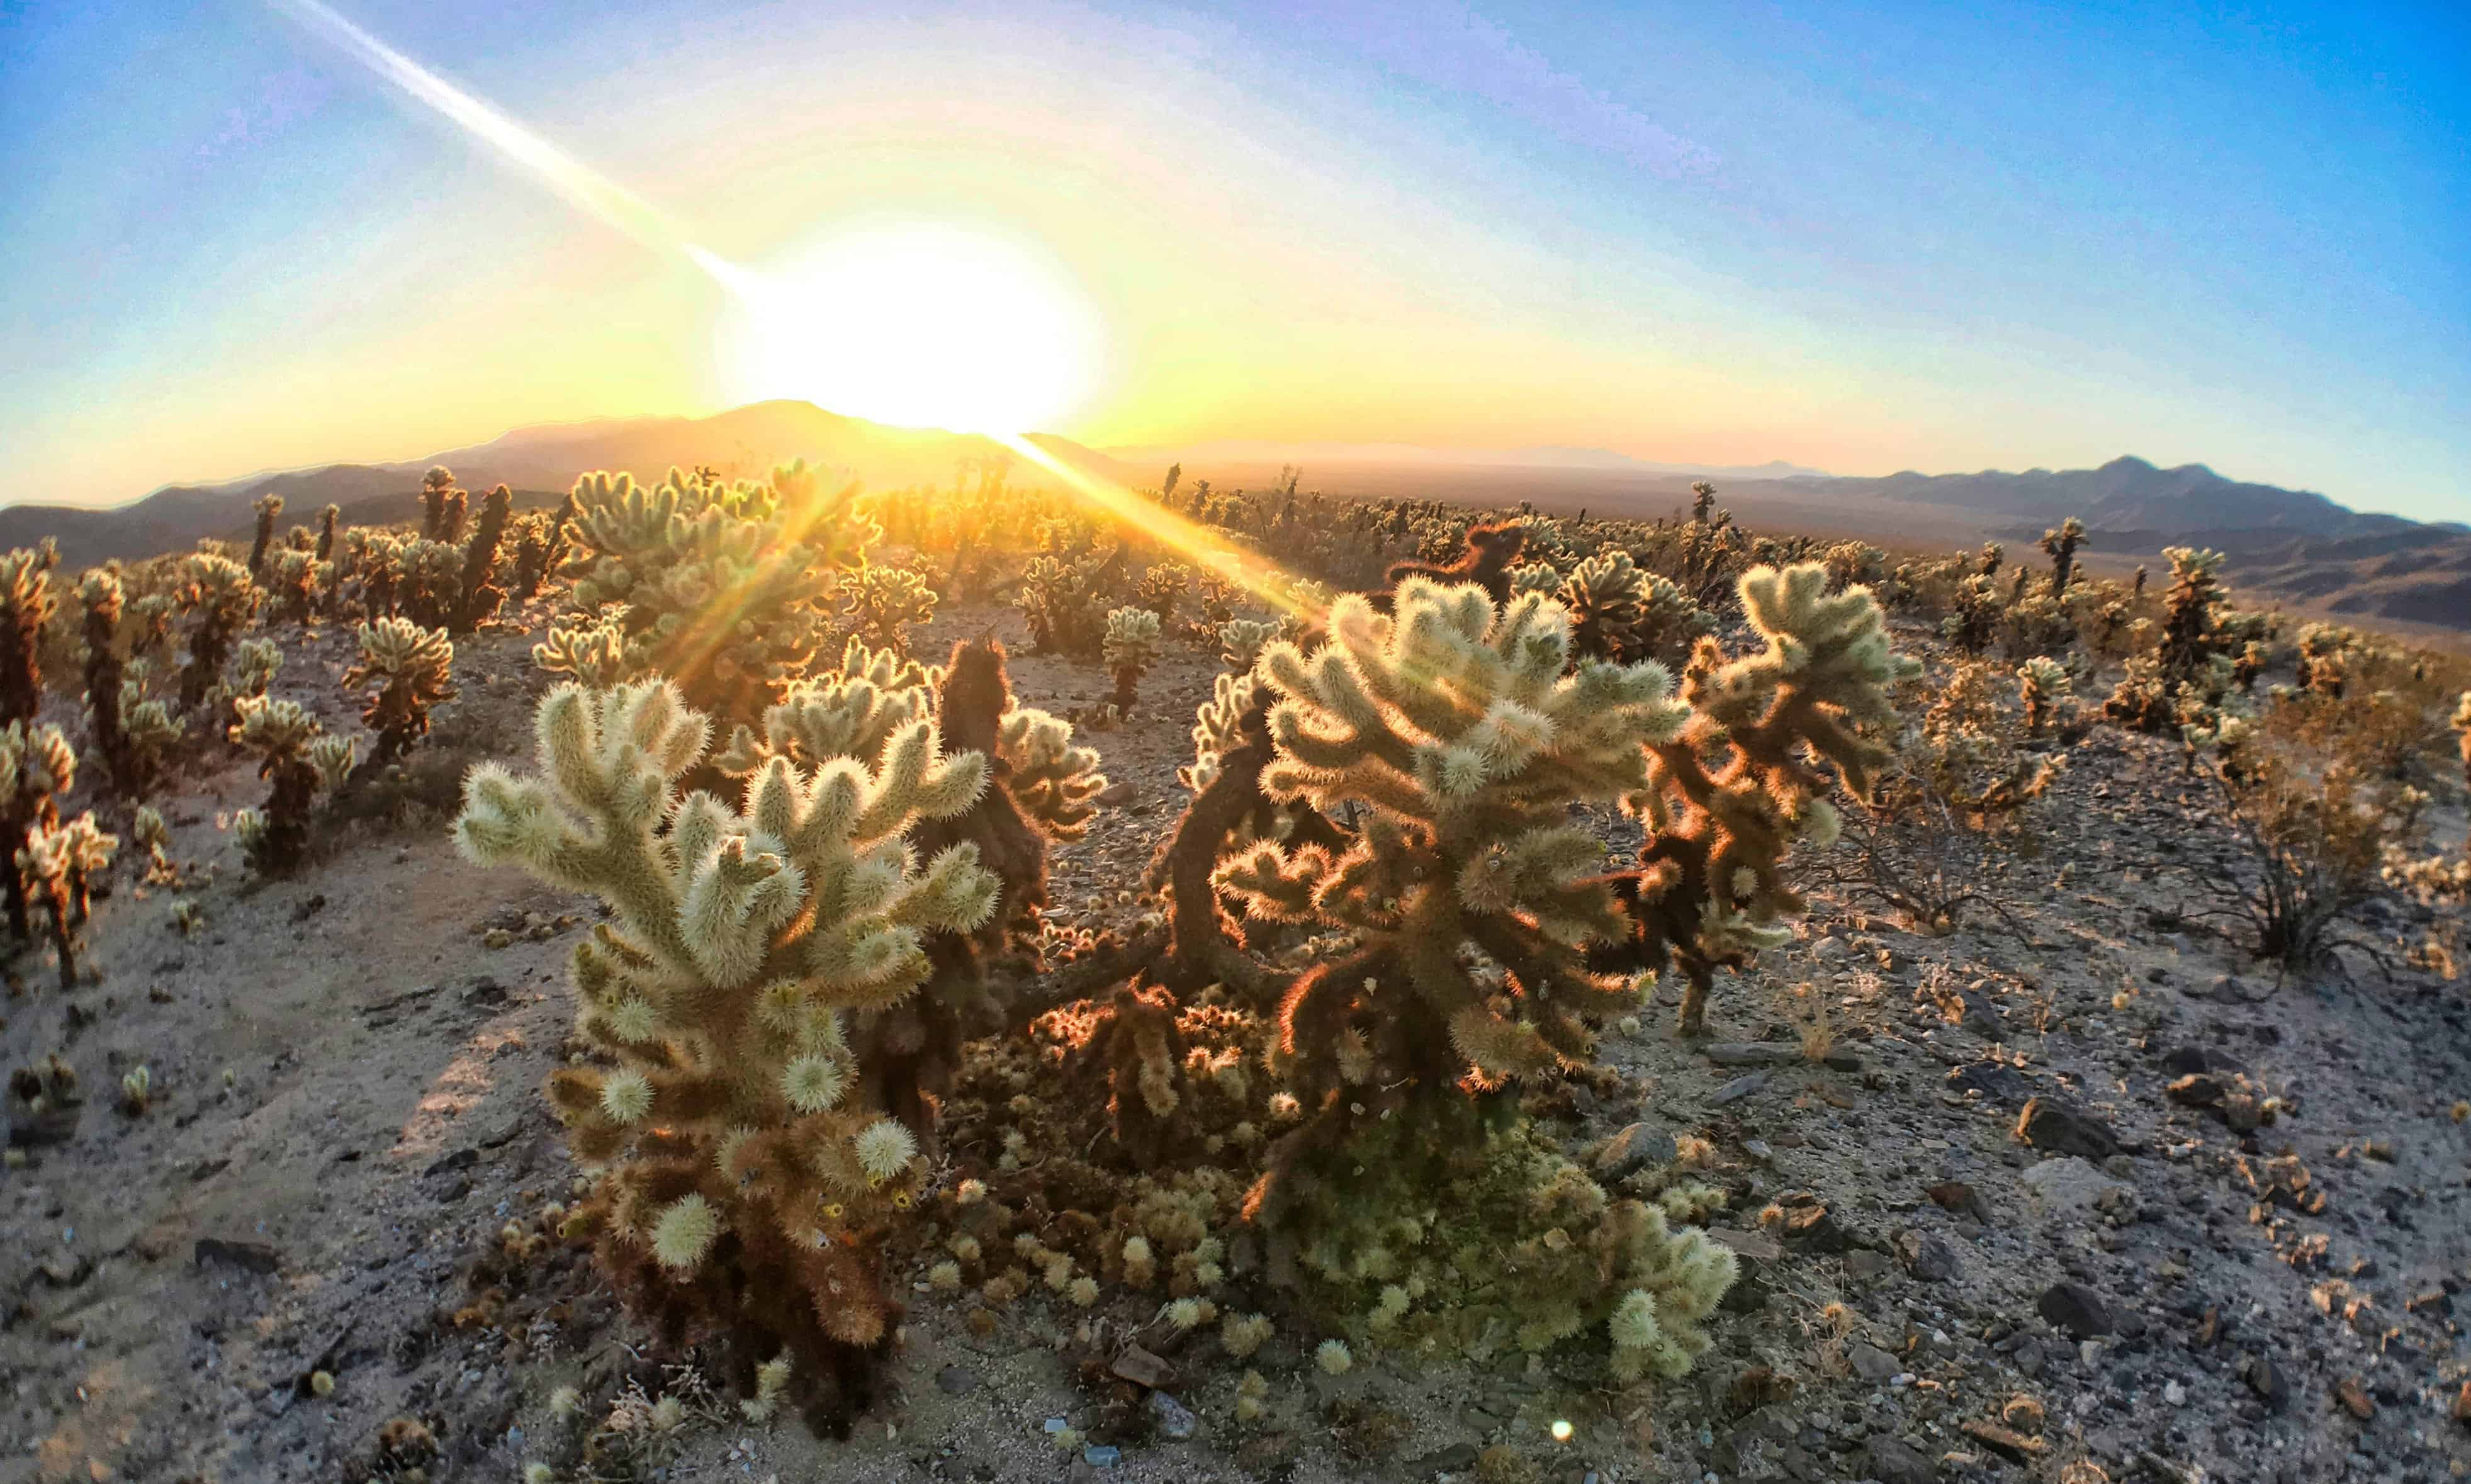 Visiting Joshua Tree National Park in the Day: Cholla Cactus Garden